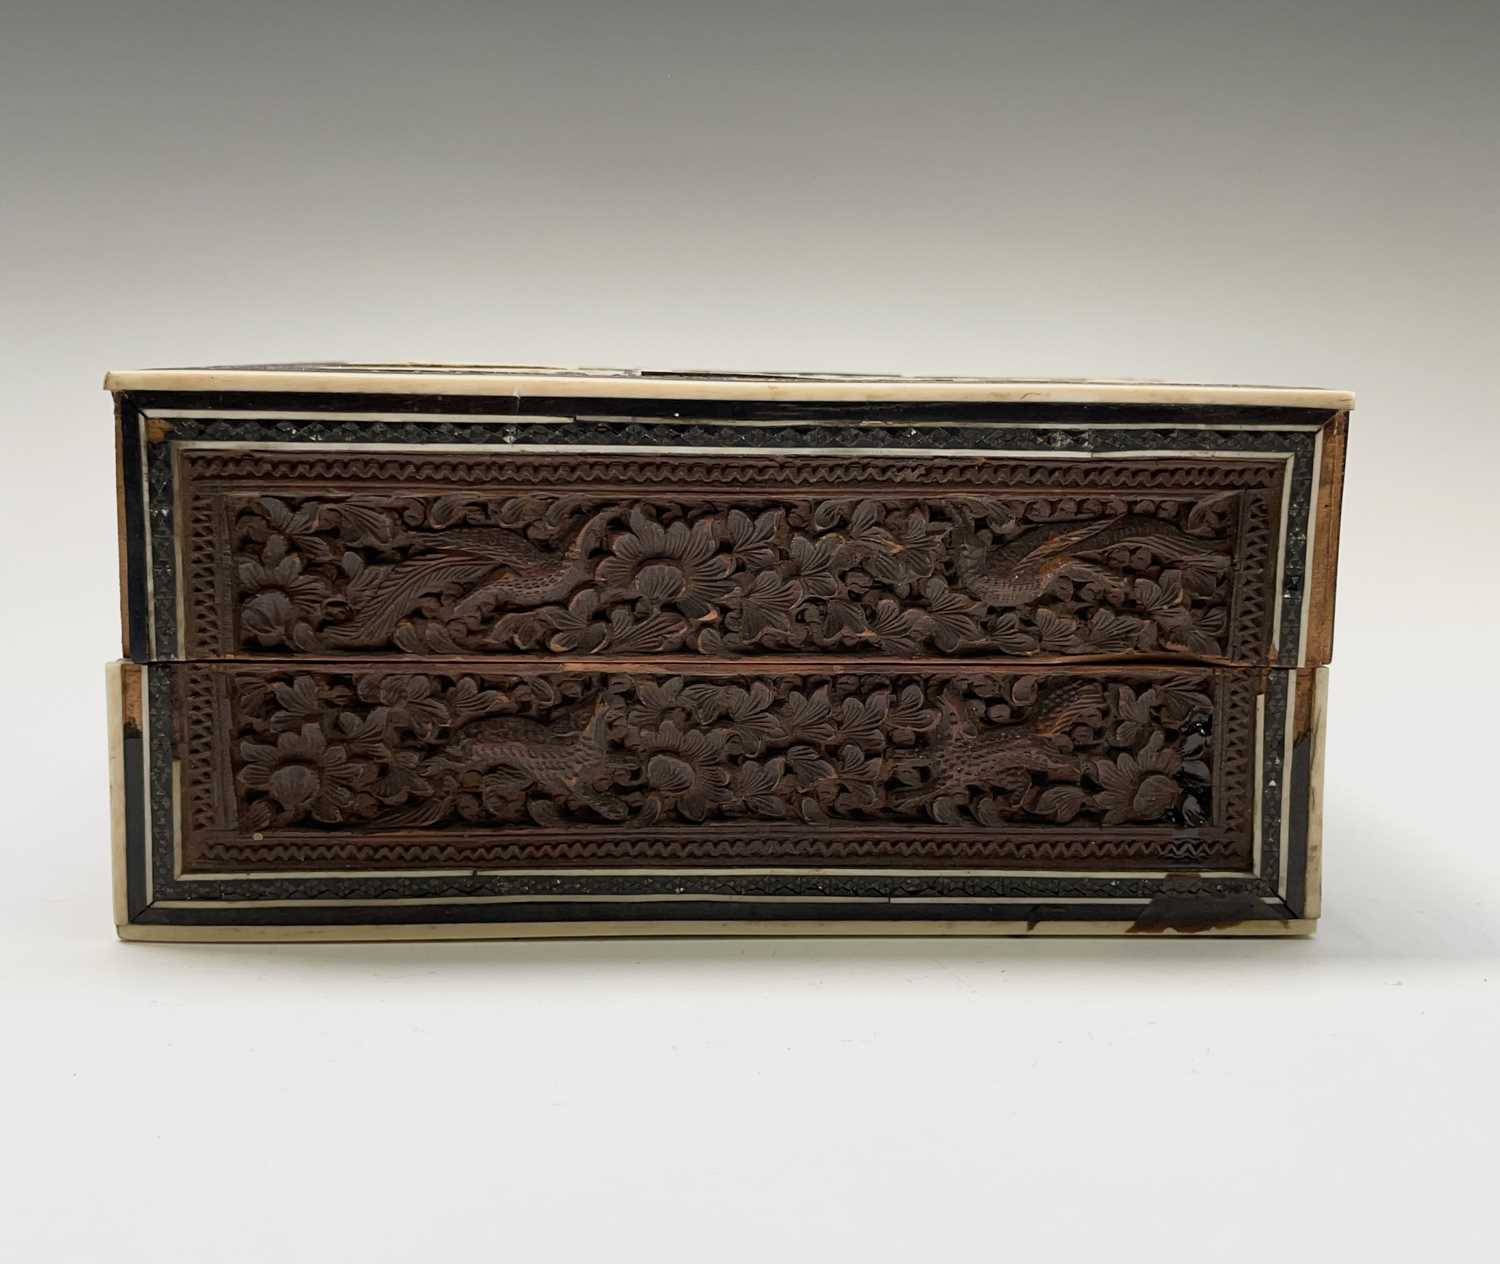 An Anglo Indian Vizagapatam and sadeli work banded folding cribbage board, 19th century, full length - Image 4 of 10